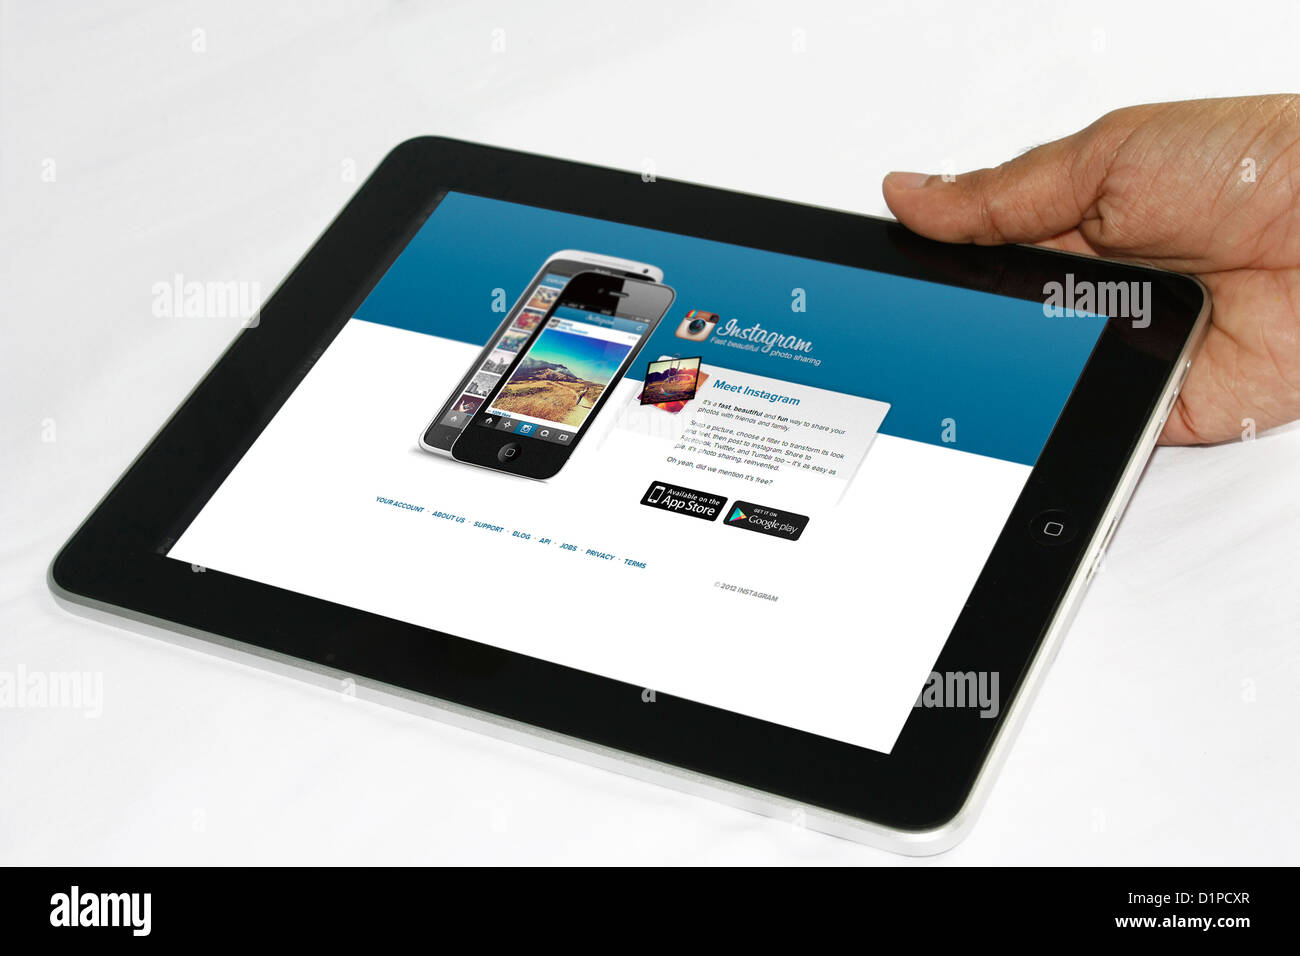 A person using Apple iPad tablet computer - Stock Image